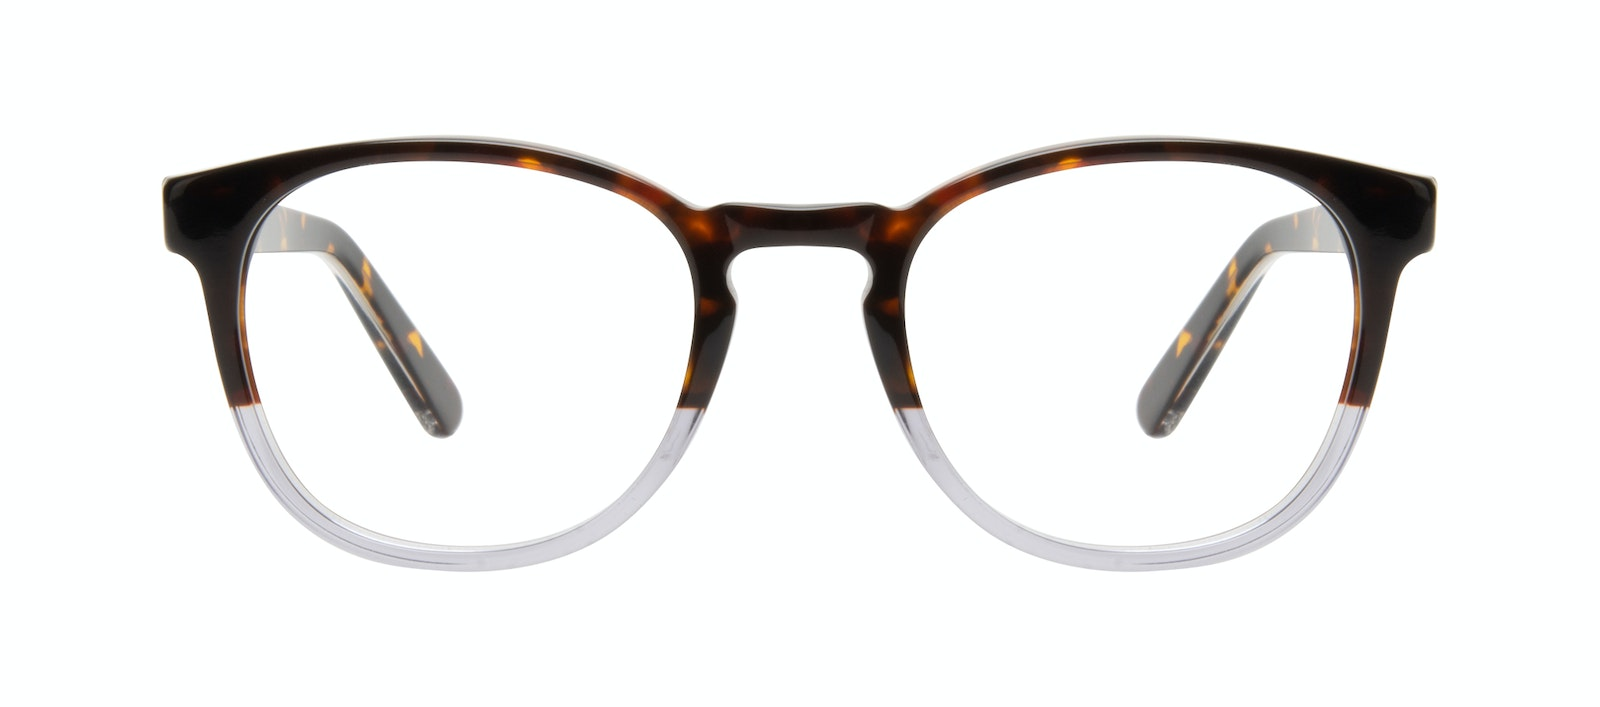 Affordable Fashion Glasses Round Eyeglasses Men Boreal Pacific Front